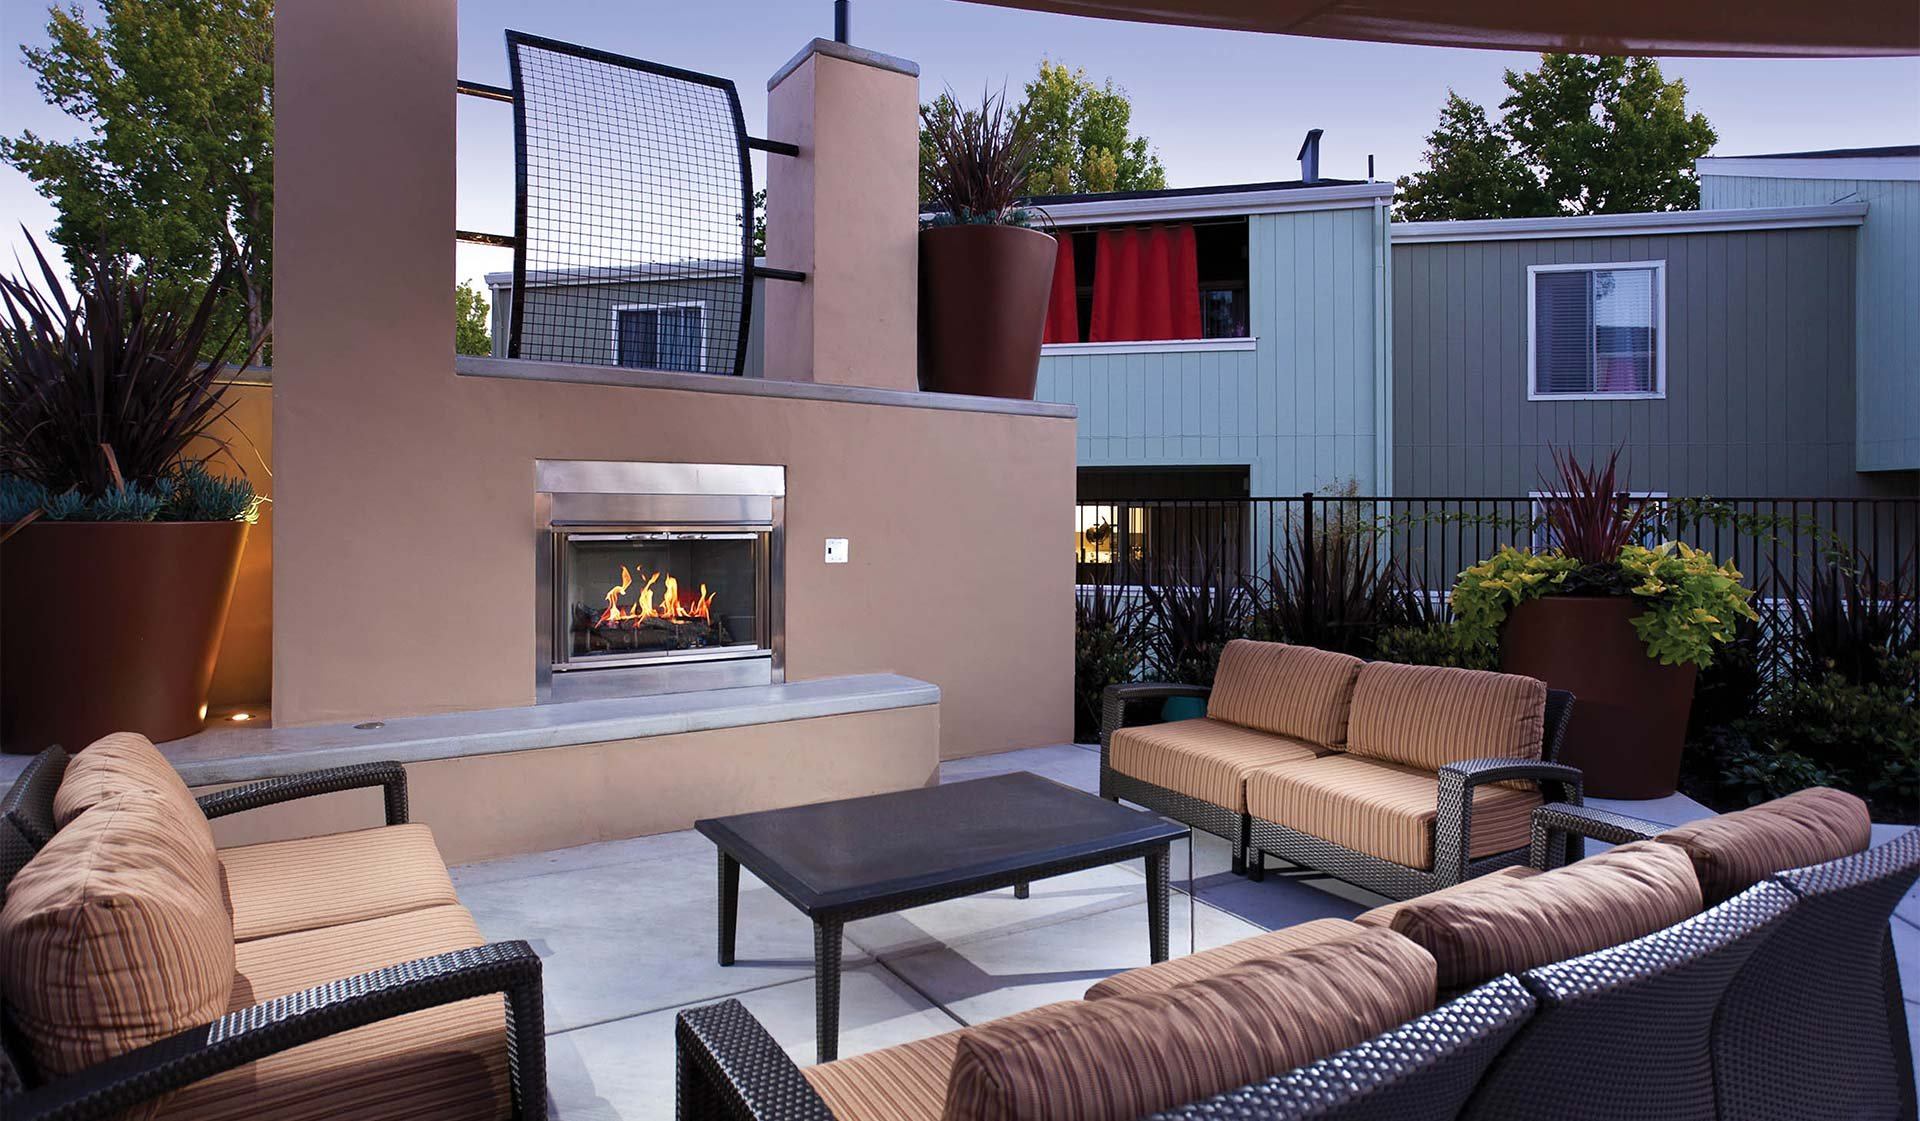 707 Leahy - Fire Place - Redwood City, CA